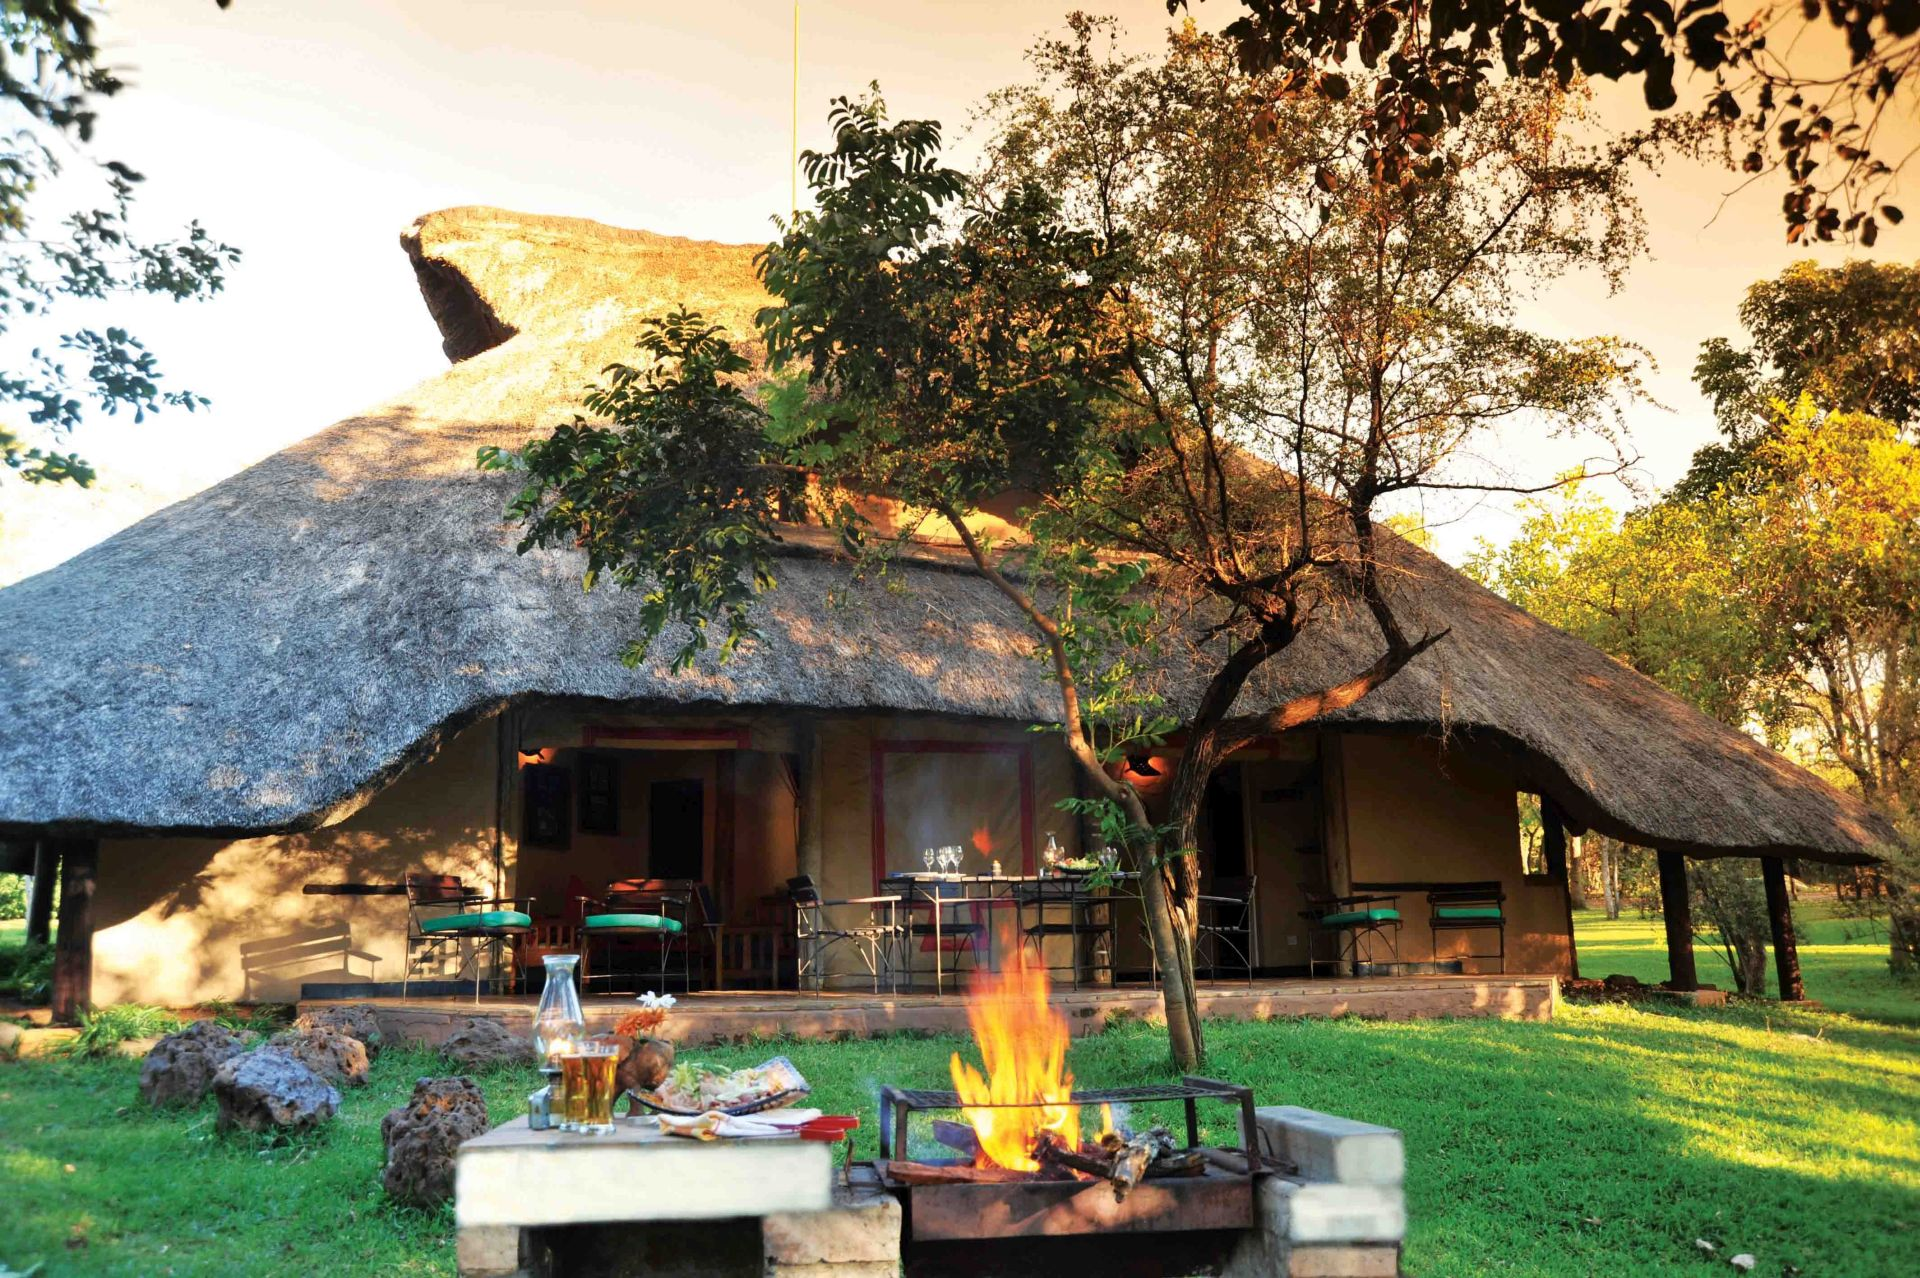 Lokuthula Lodges in Victoria Falls offer the perfect accommodation for guests who want to self-cater during their stay in Zimbabwes adventure capital, Africa Albida.